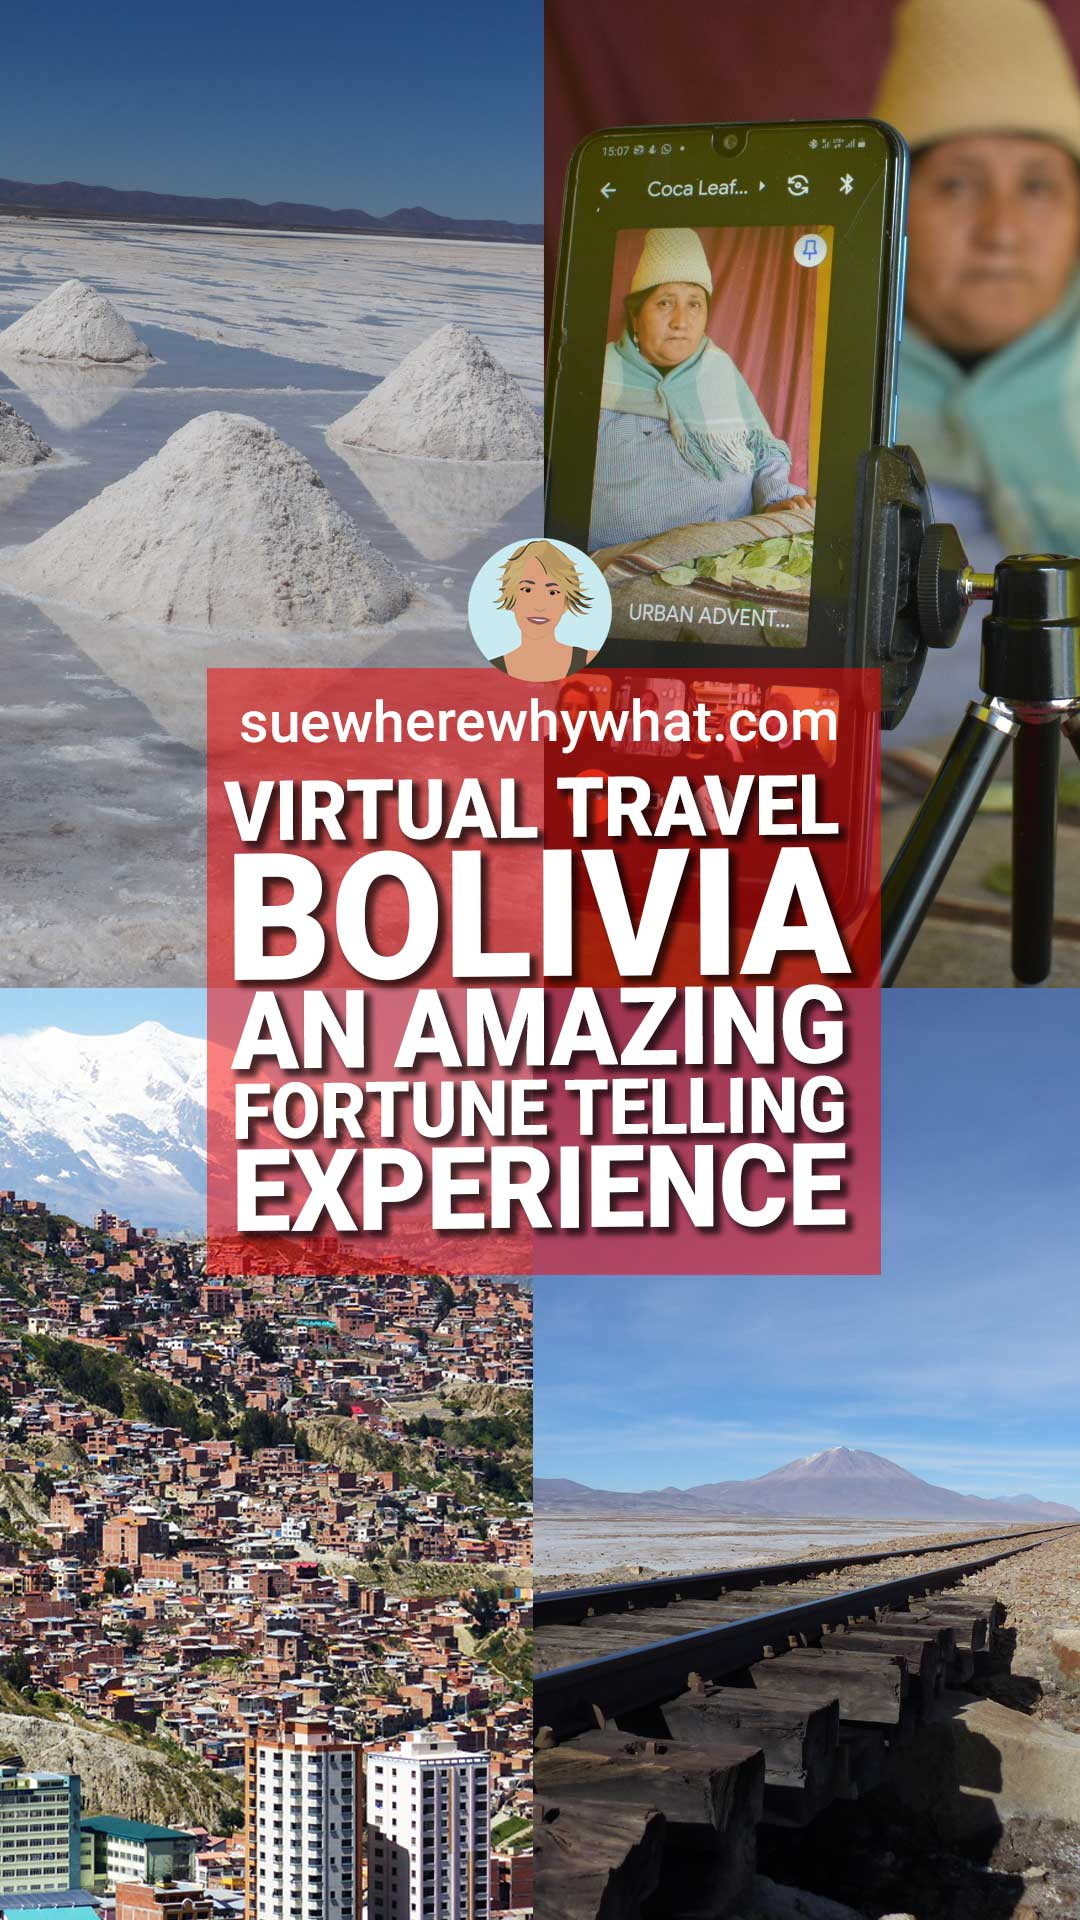 Virtual Fortune Teller Experience – Travelling to Bolivia Without Leaving Home